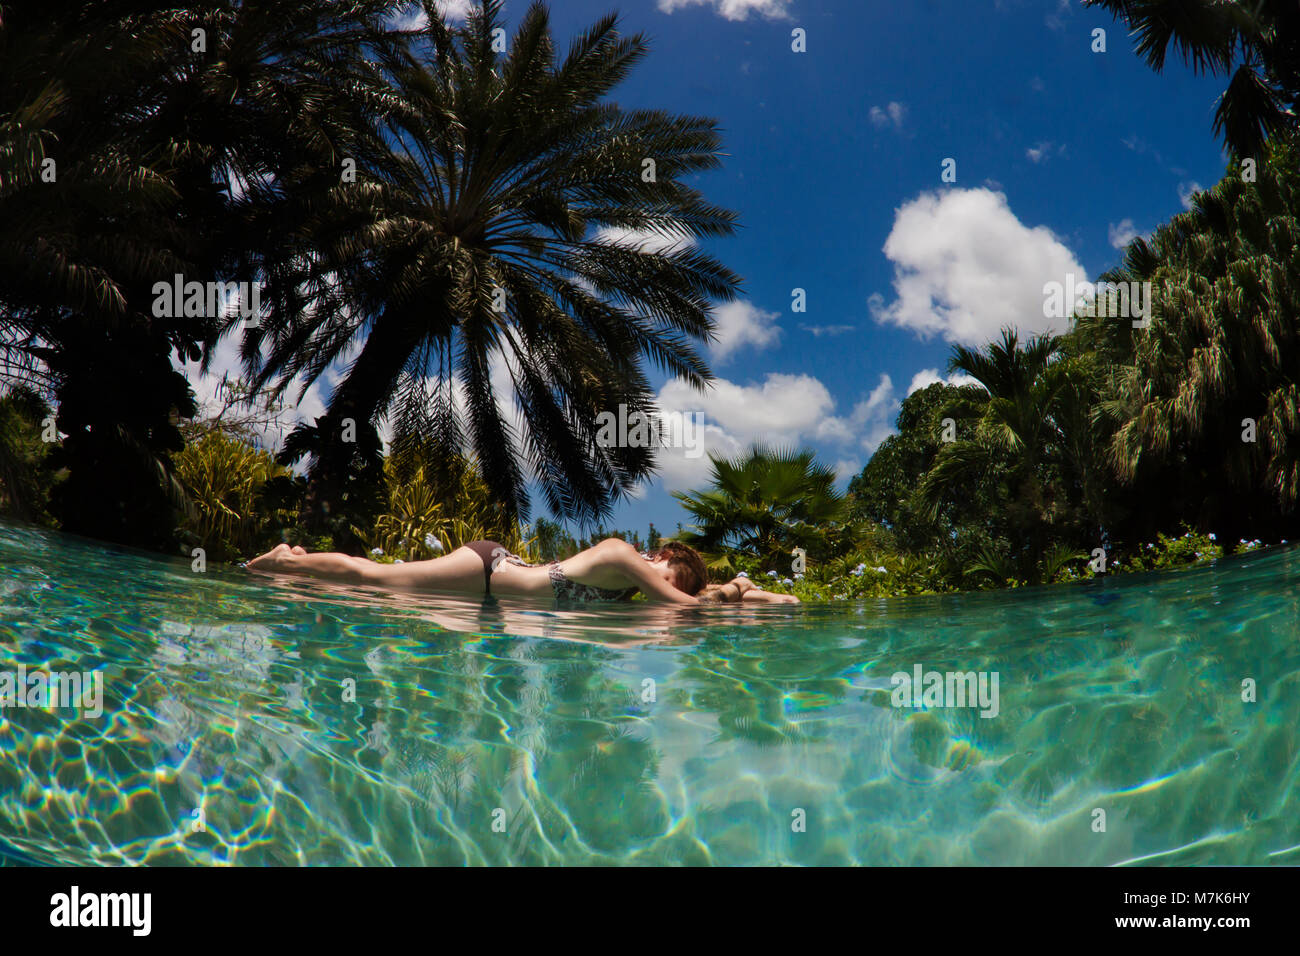 A woman lies at the edge of an infinity pool with a tropical background on the island of Curacao, Netherlands Antilles, - Stock Image